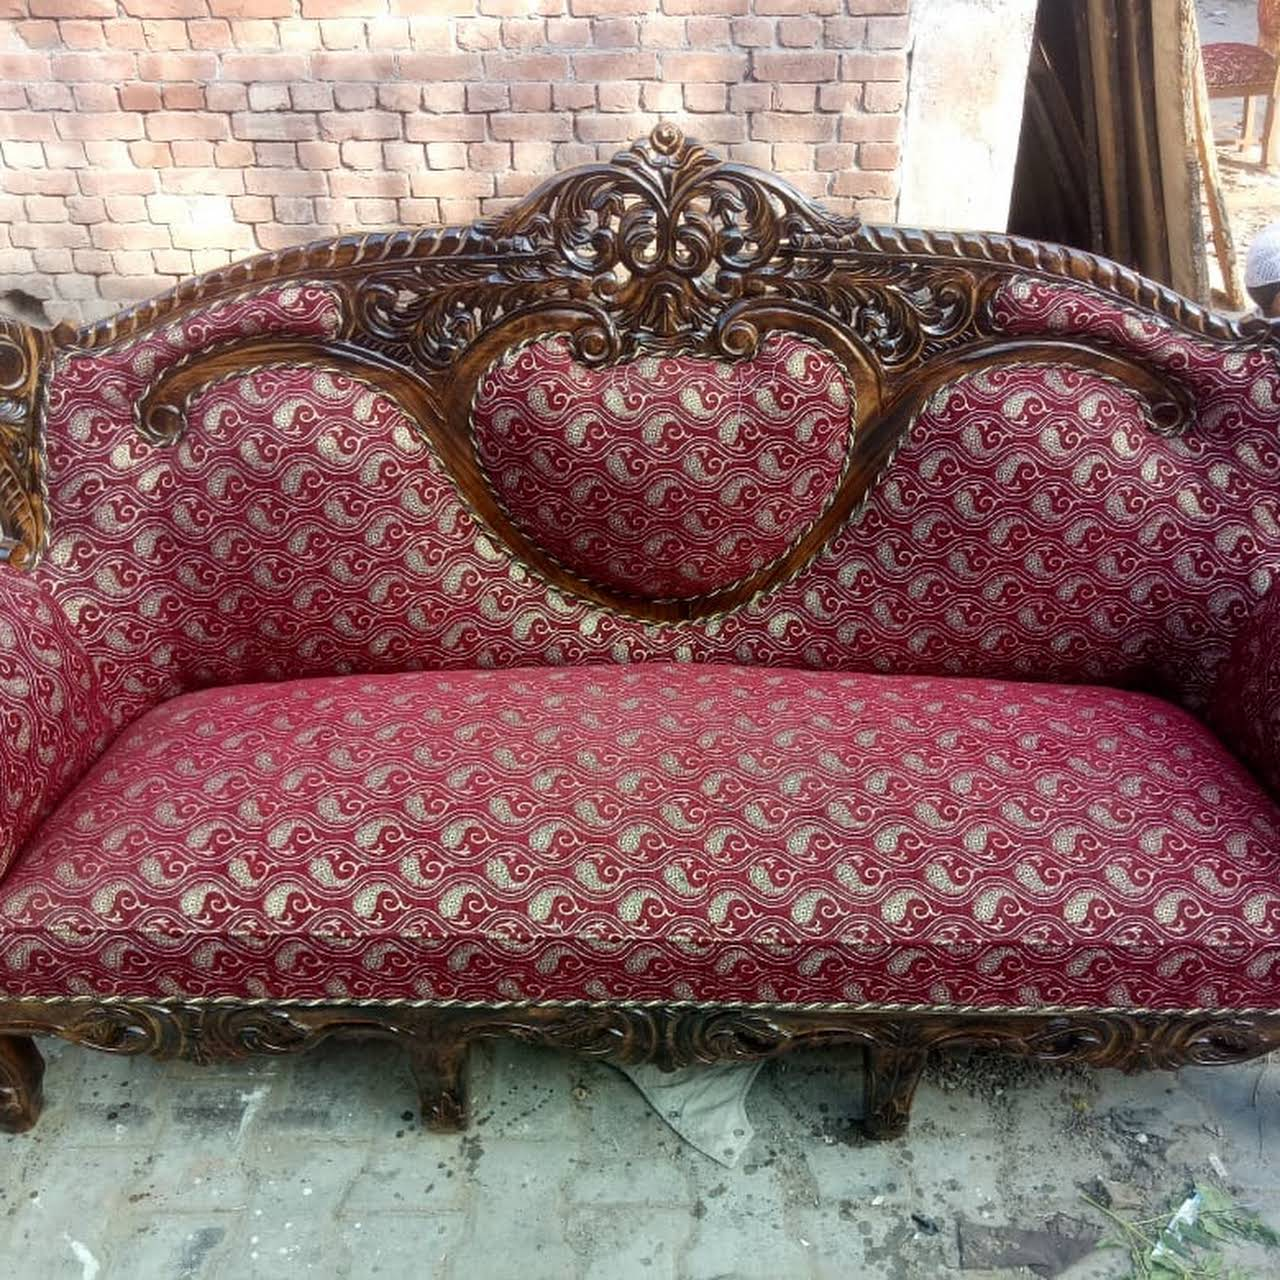 Admirable Jahapanah Furniture Furniture Wholesaler In Hyderabad Gmtry Best Dining Table And Chair Ideas Images Gmtryco